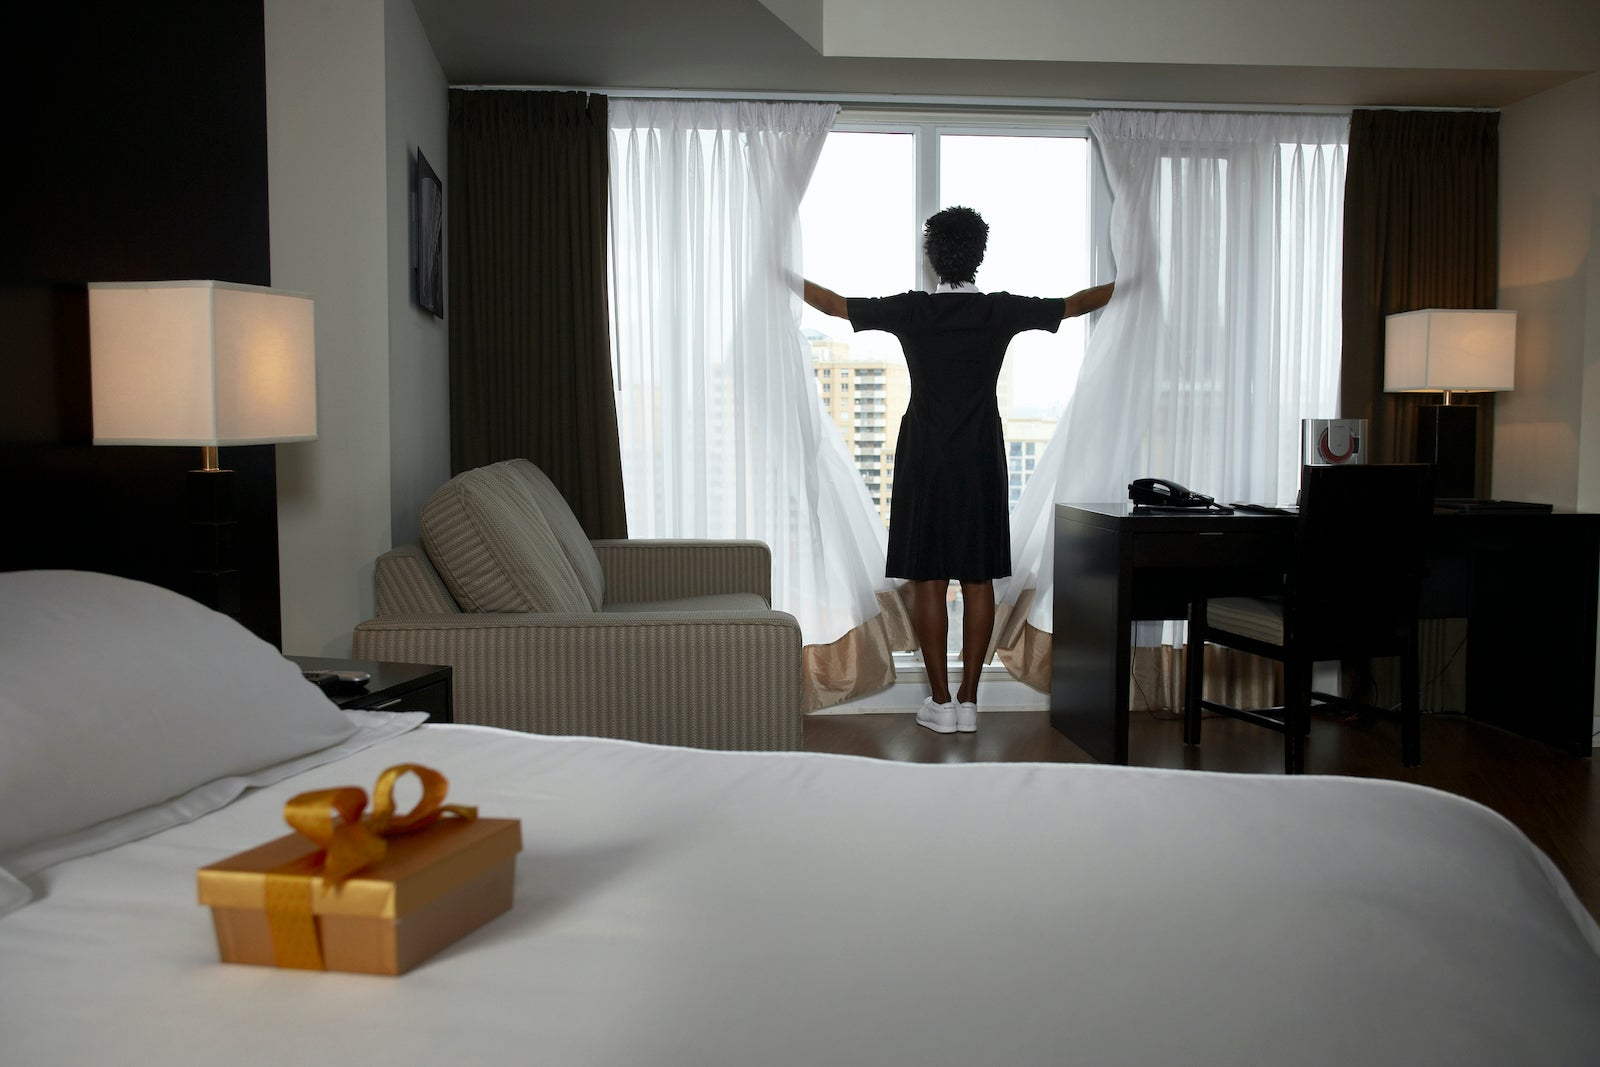 Hilton hotels will now only offer housekeeping by request